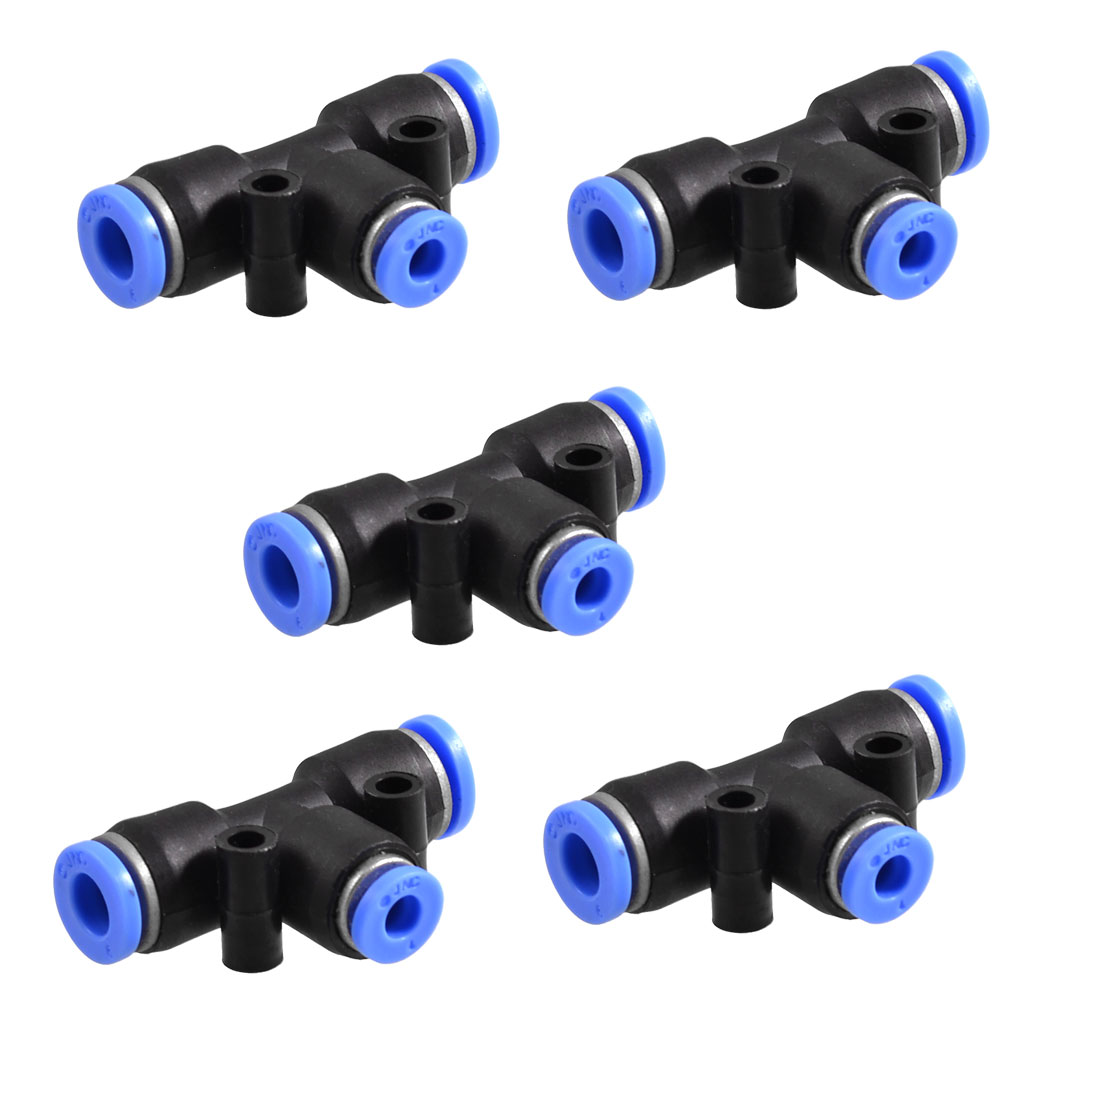 5 Pcs 6mm to 4mm Quick Joint Air Pneumatic T Shaped Push in Fittings